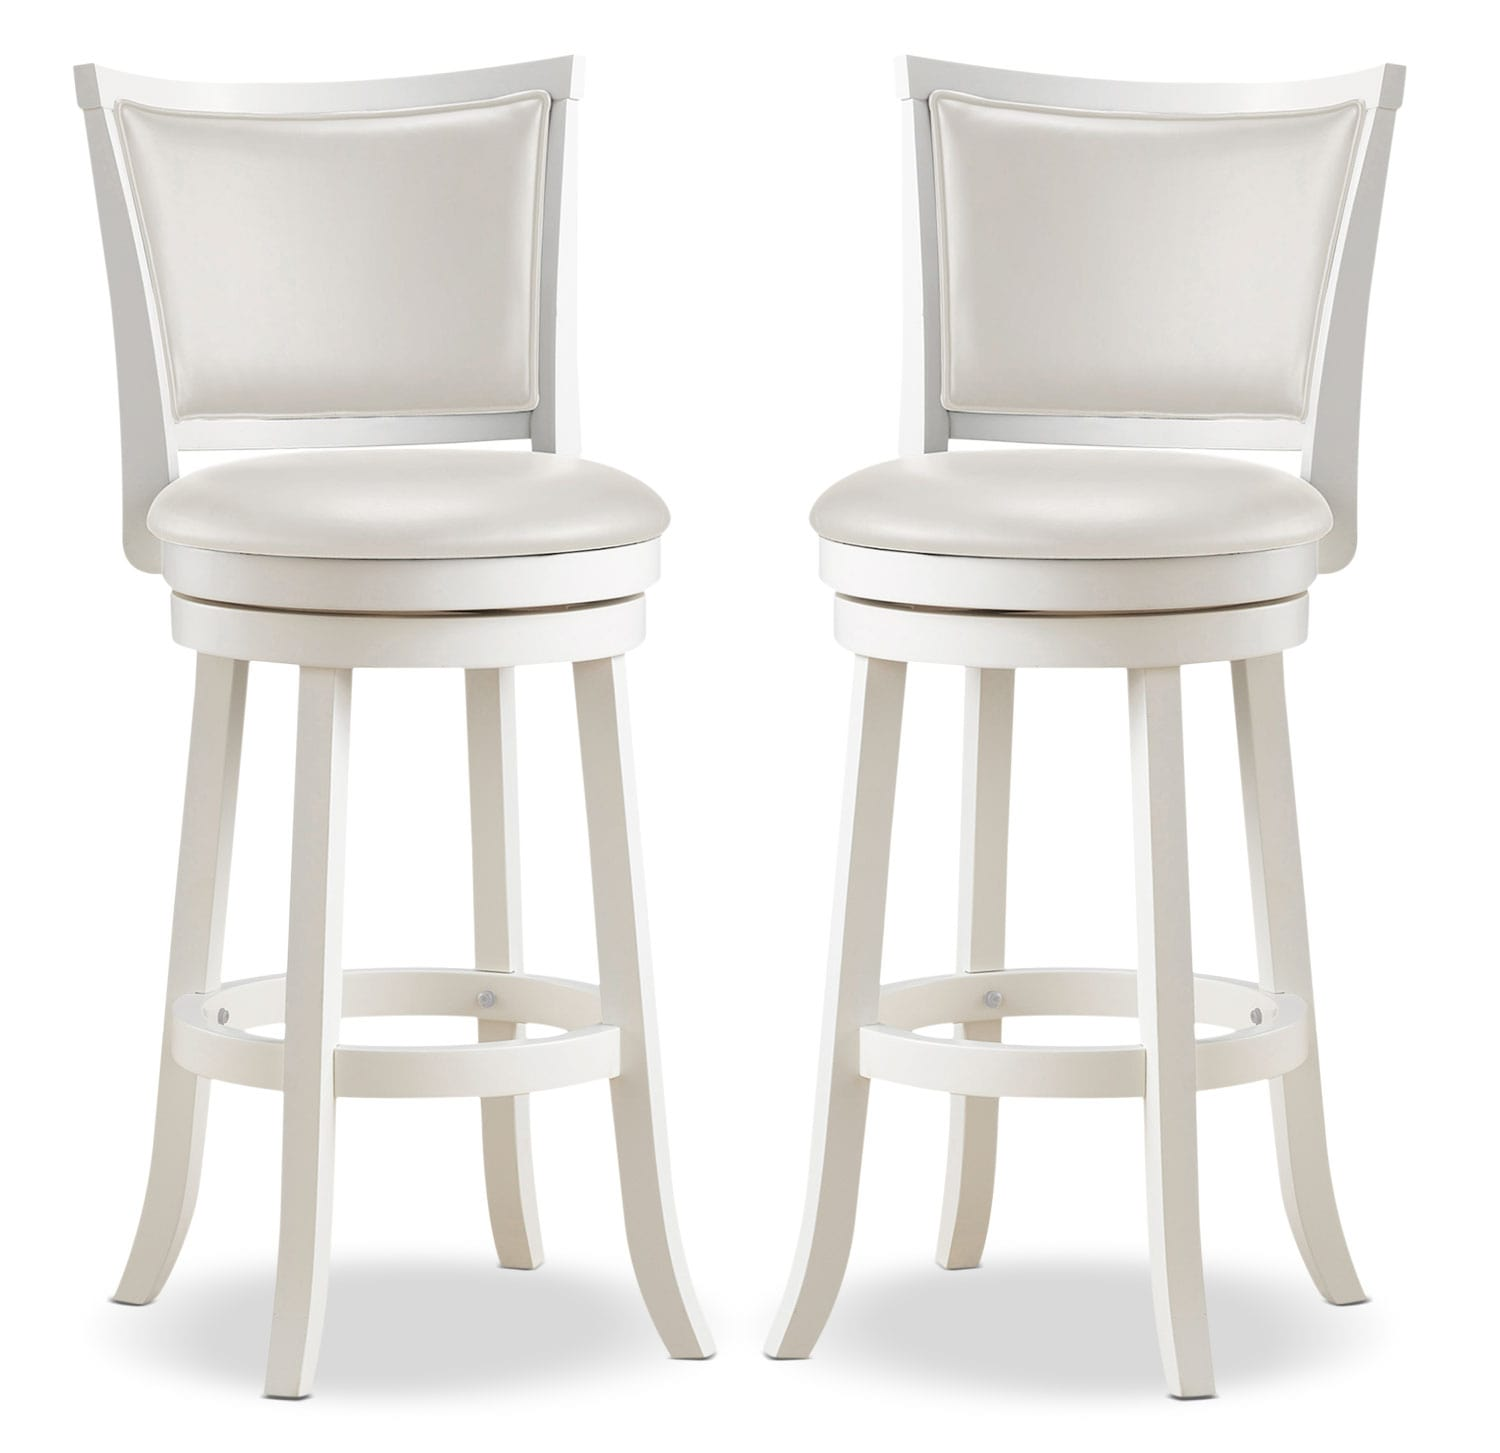 counter height chairs set of 2 chair covers for wedding woodgrove bar dining stool the brick